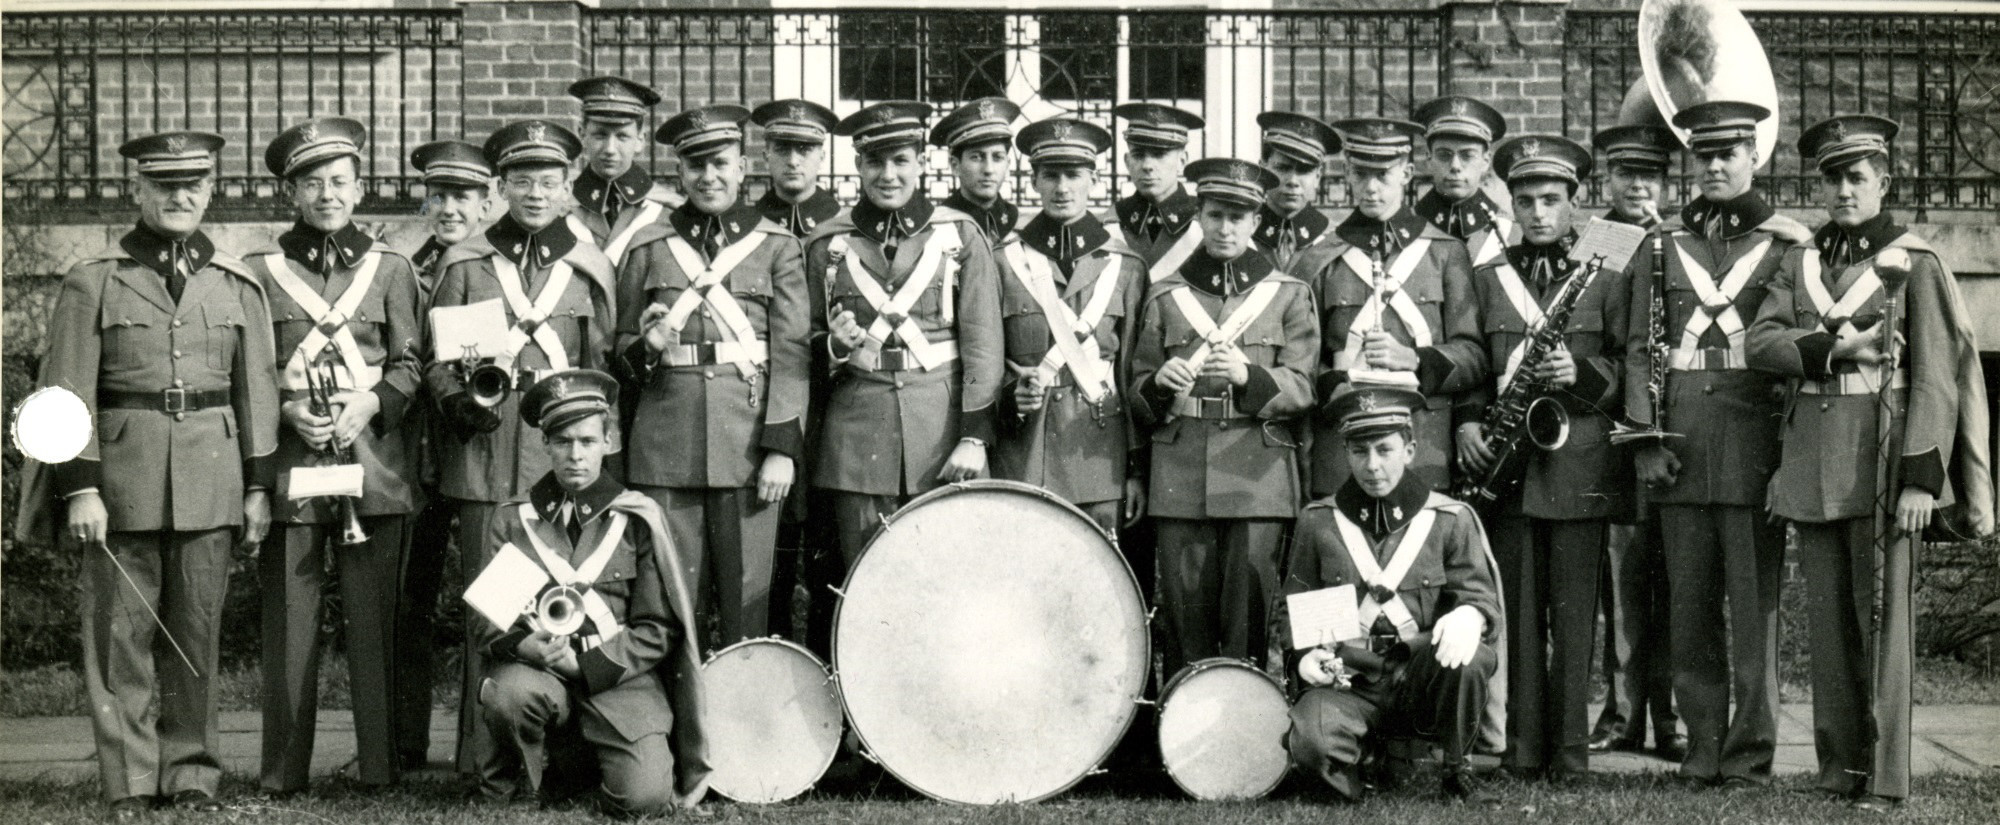 Group portrait of the JHU Band